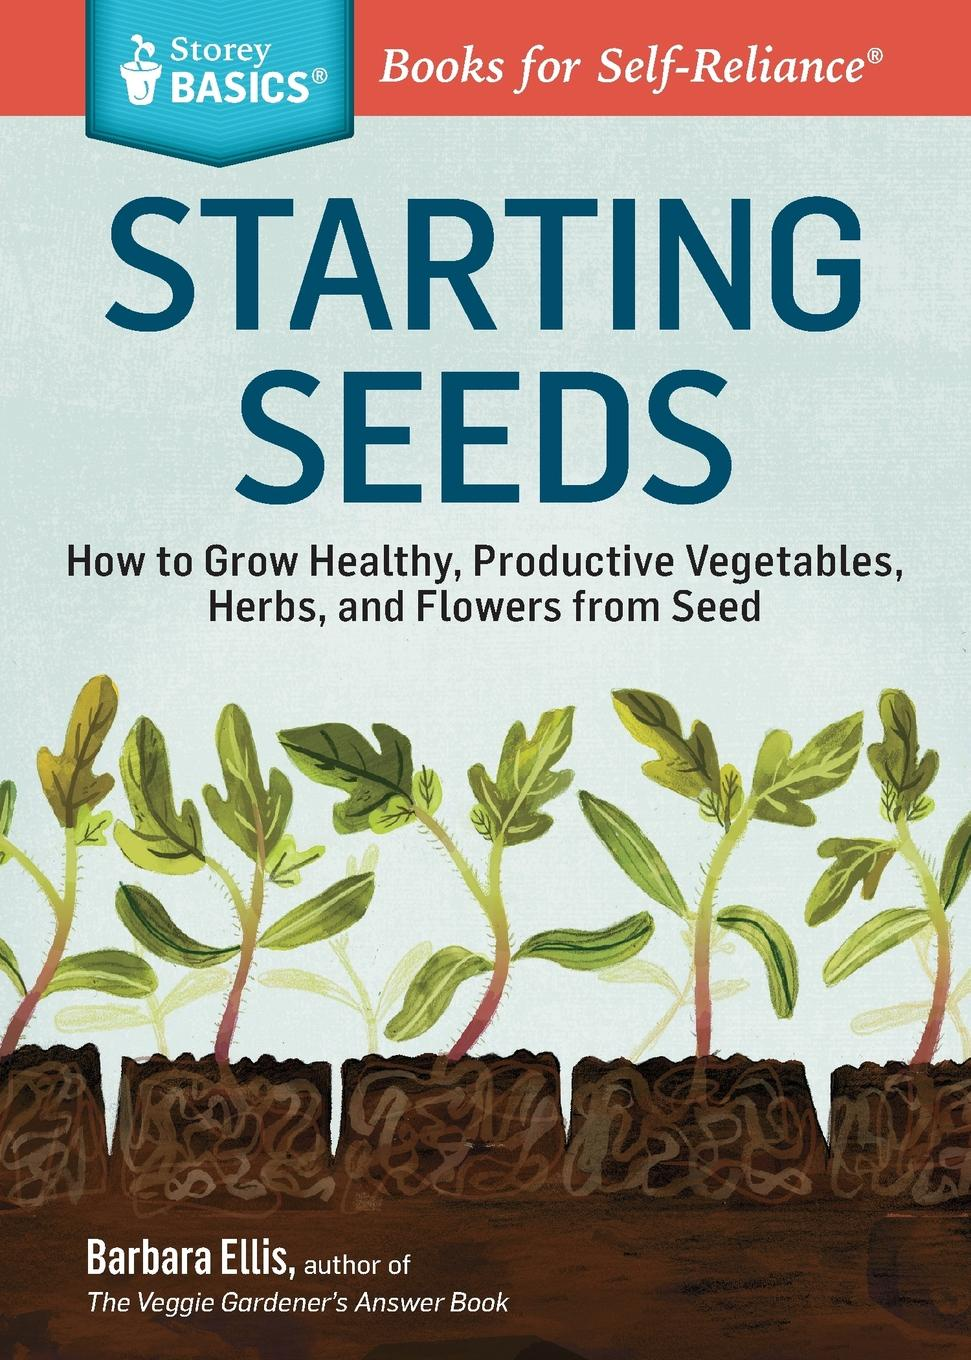 Фото - Barbara W. Ellis Starting Seeds. How to Grow Healthy, Productive Vegetables, Herbs, and Flowers from Seed. A Storey BASICS. Title mark kopecky managing manure how to store compost and use organic livestock wastes a storey basics title